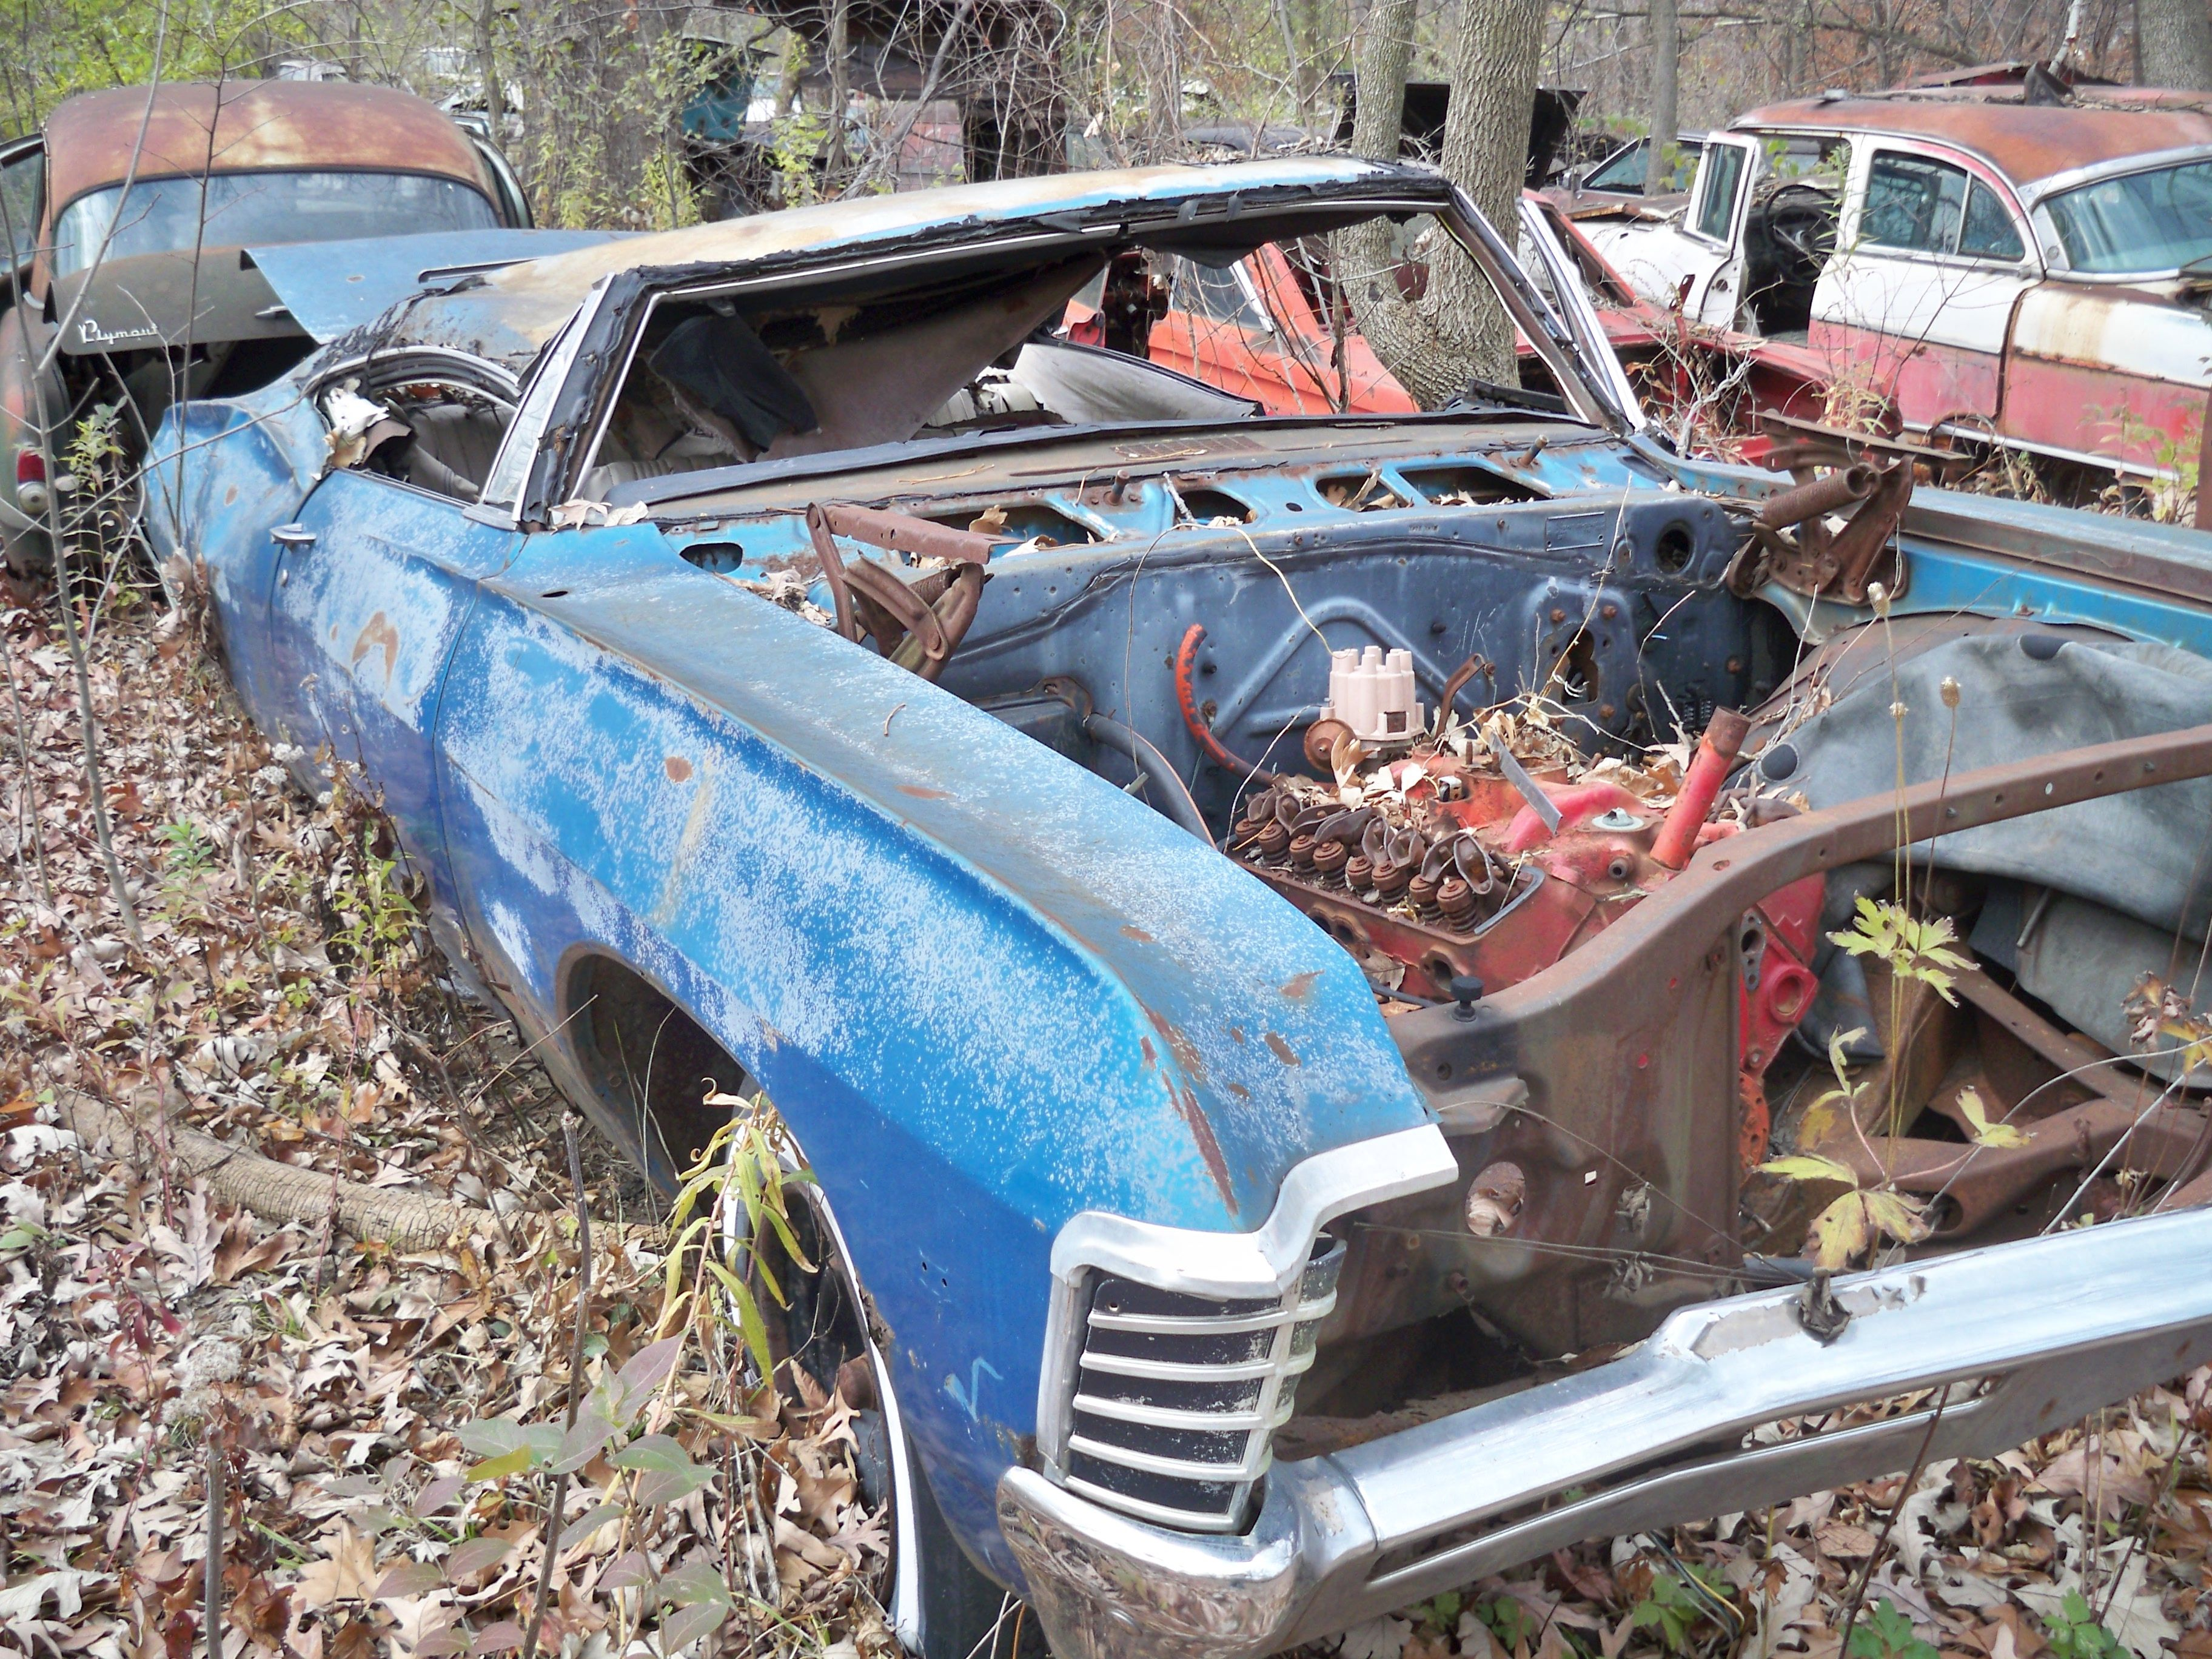 old cars | junk | Pinterest | Abandoned vehicles, Cars and Vehicle